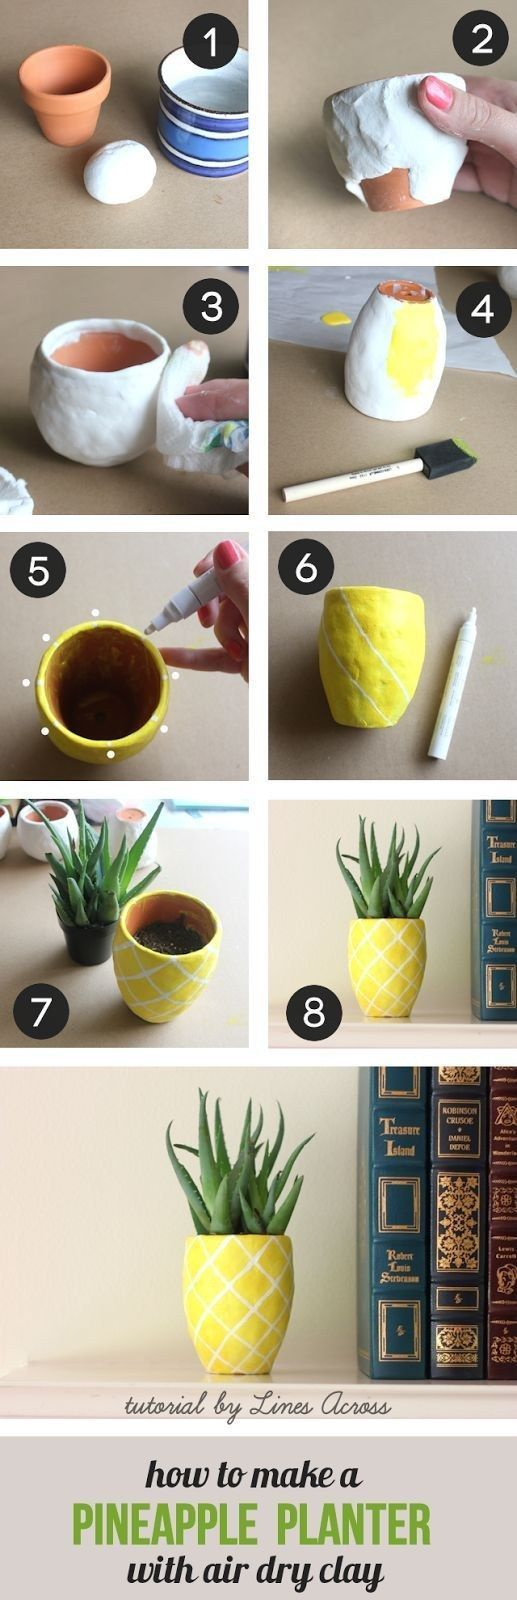 15-cutest-diy-projects-you-must-finish1